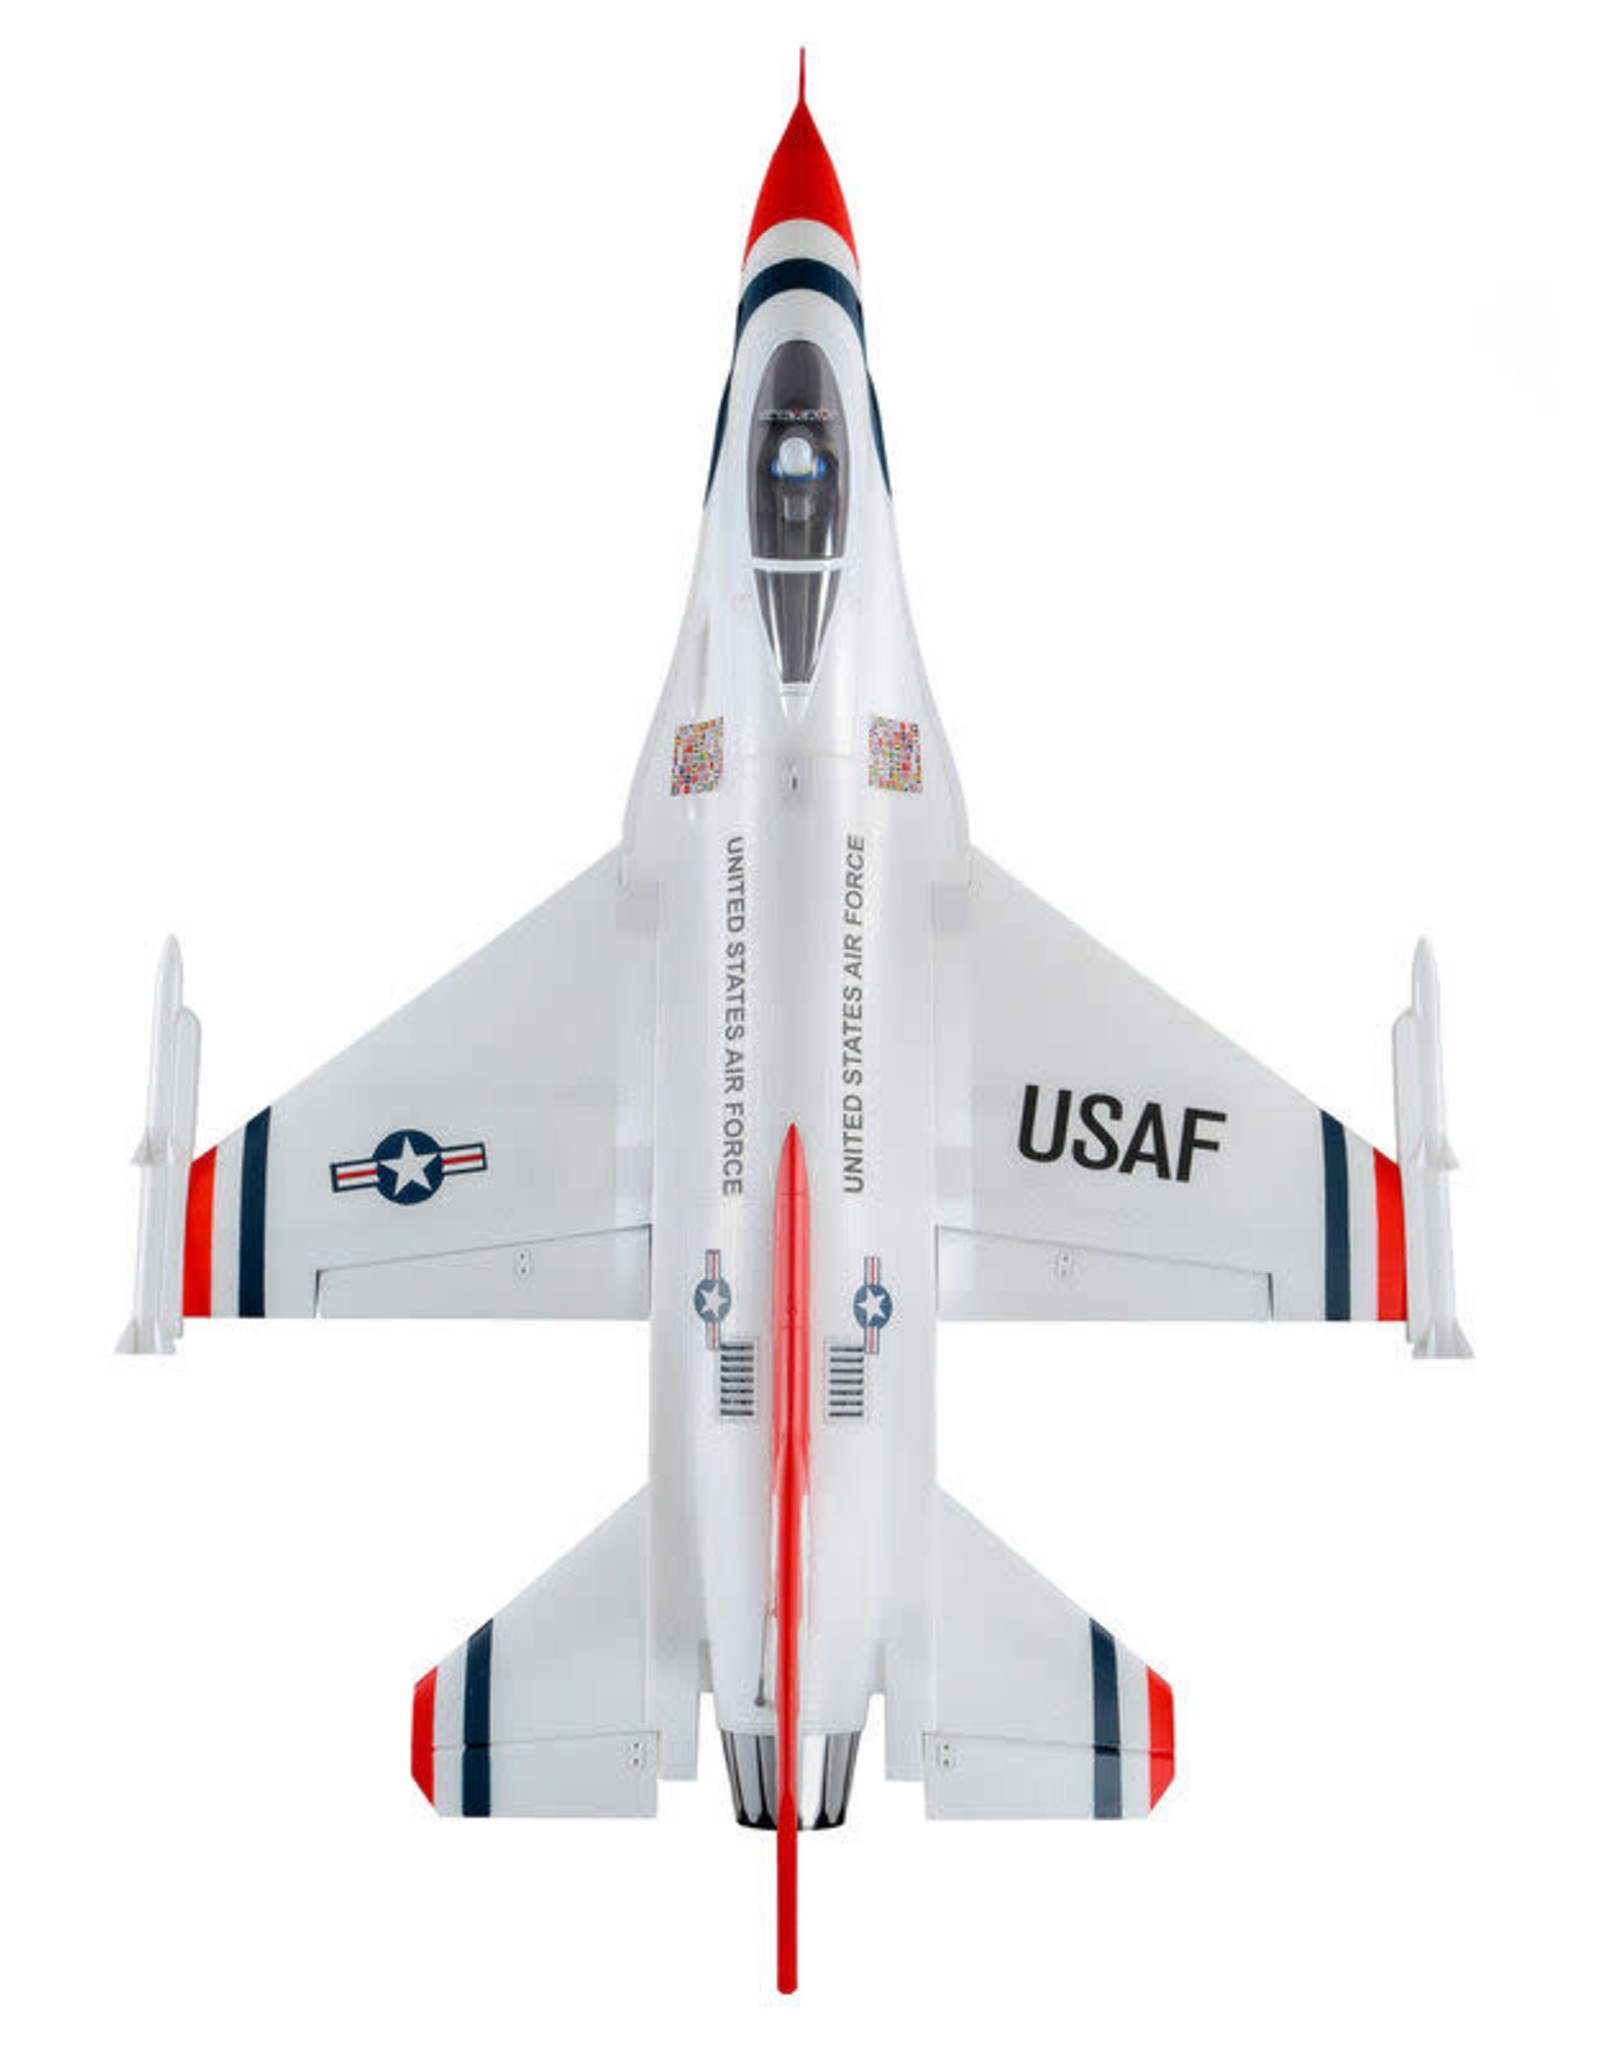 EFL EFL7850 F-16 Thunderbirds 70mm EDF BNF Basic with AS3X and SAFE Select, 815mm